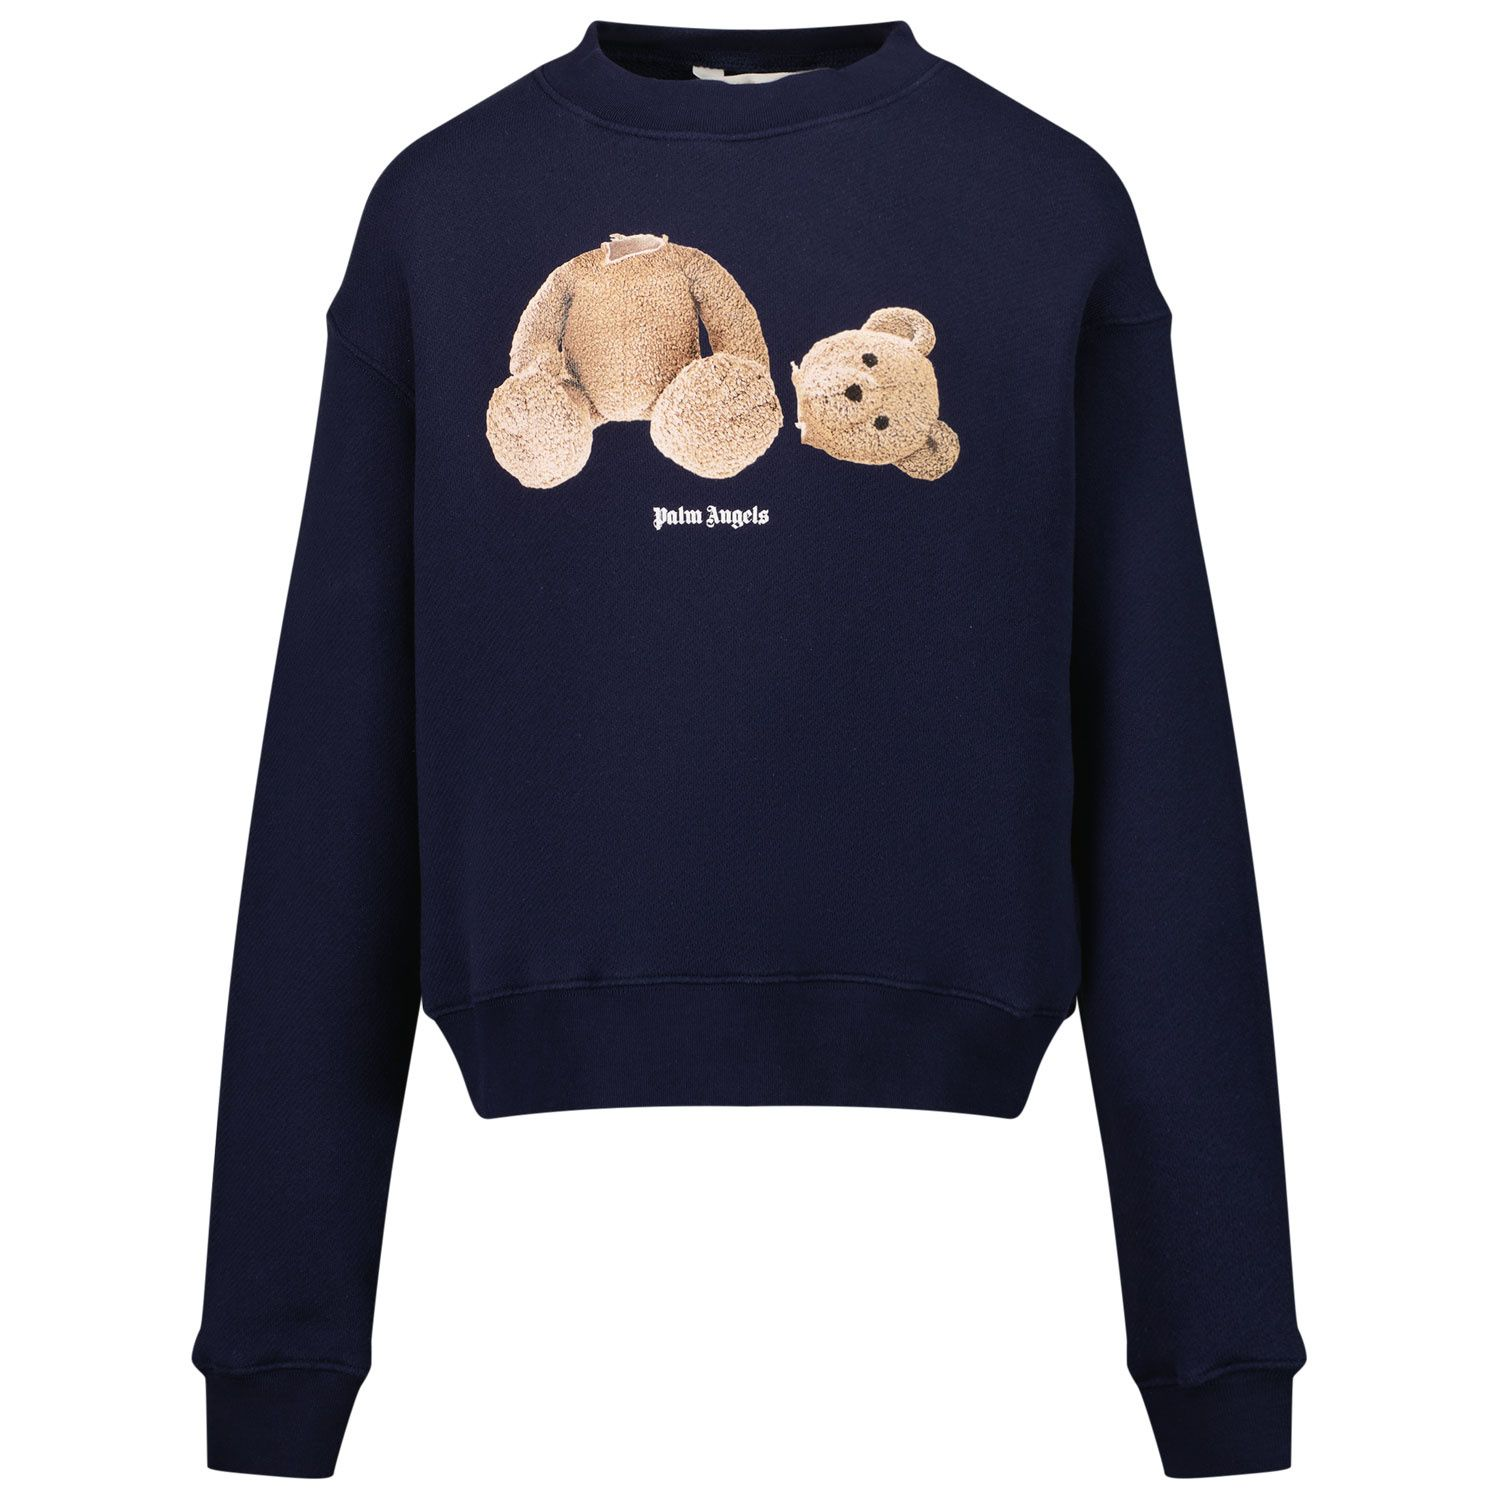 Picture of Palm Angels PBBA001F21FLE001 kids sweater navy